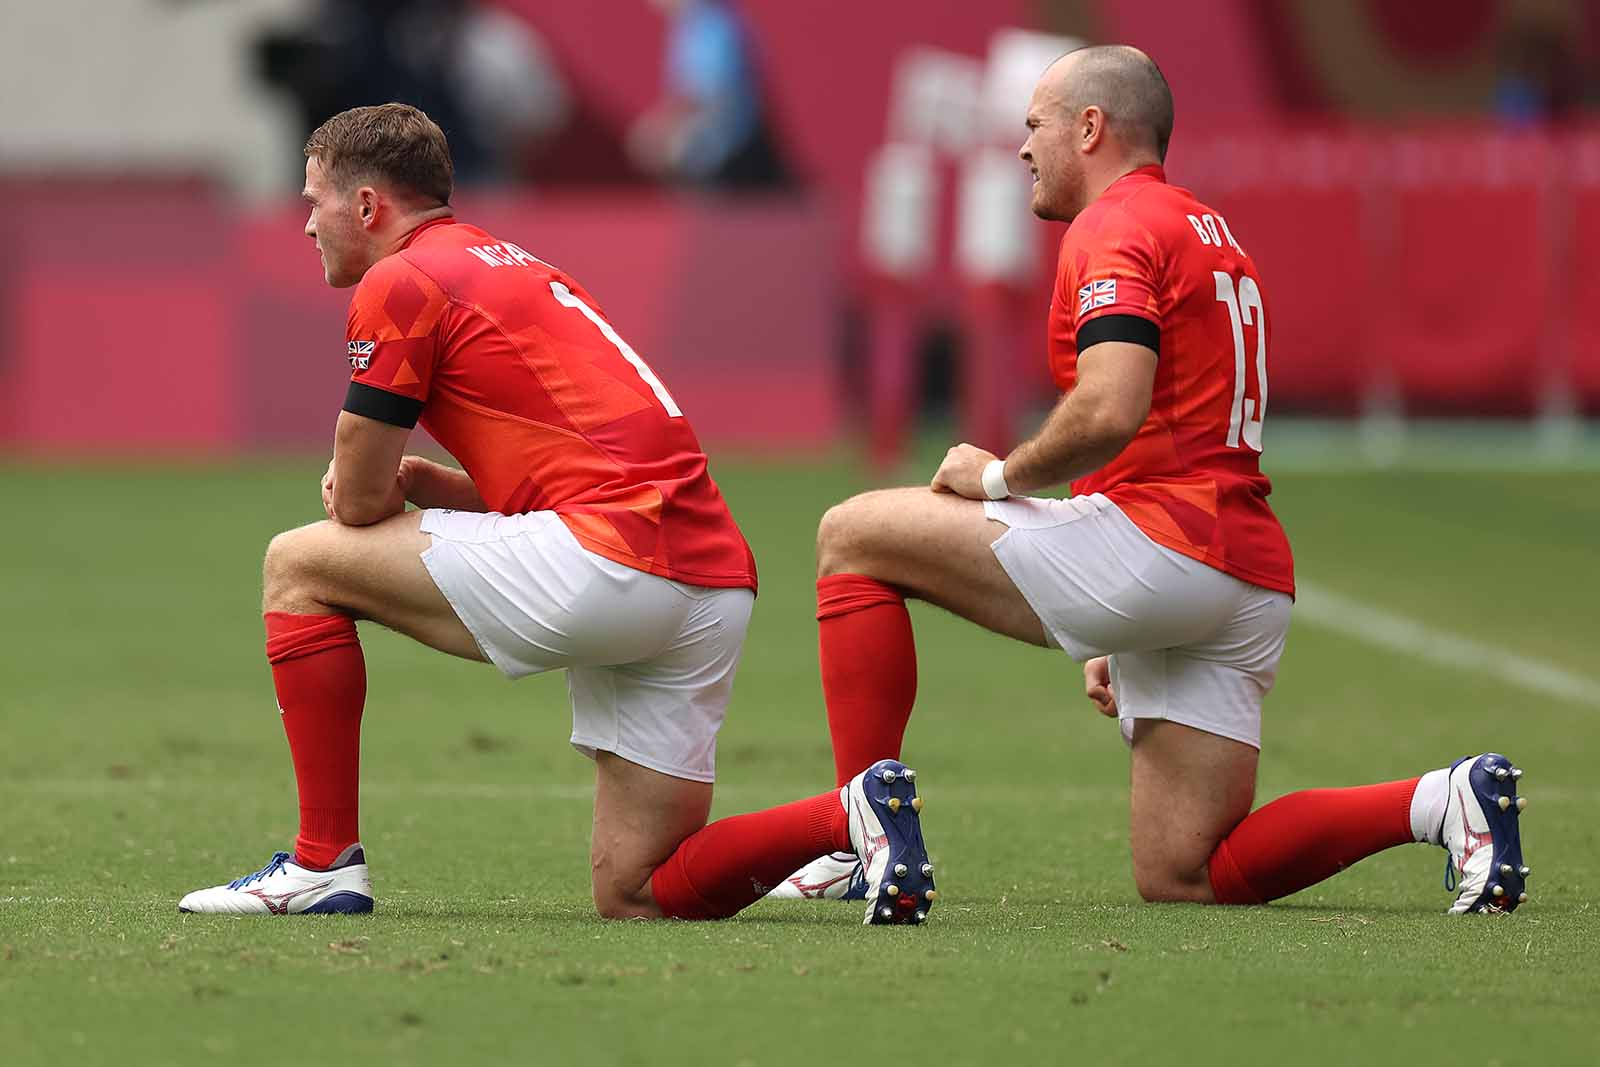 Team GB players take a knee during the Rugby Sevens Men's semifinal match between New Zealand and Great Britain on July 28.